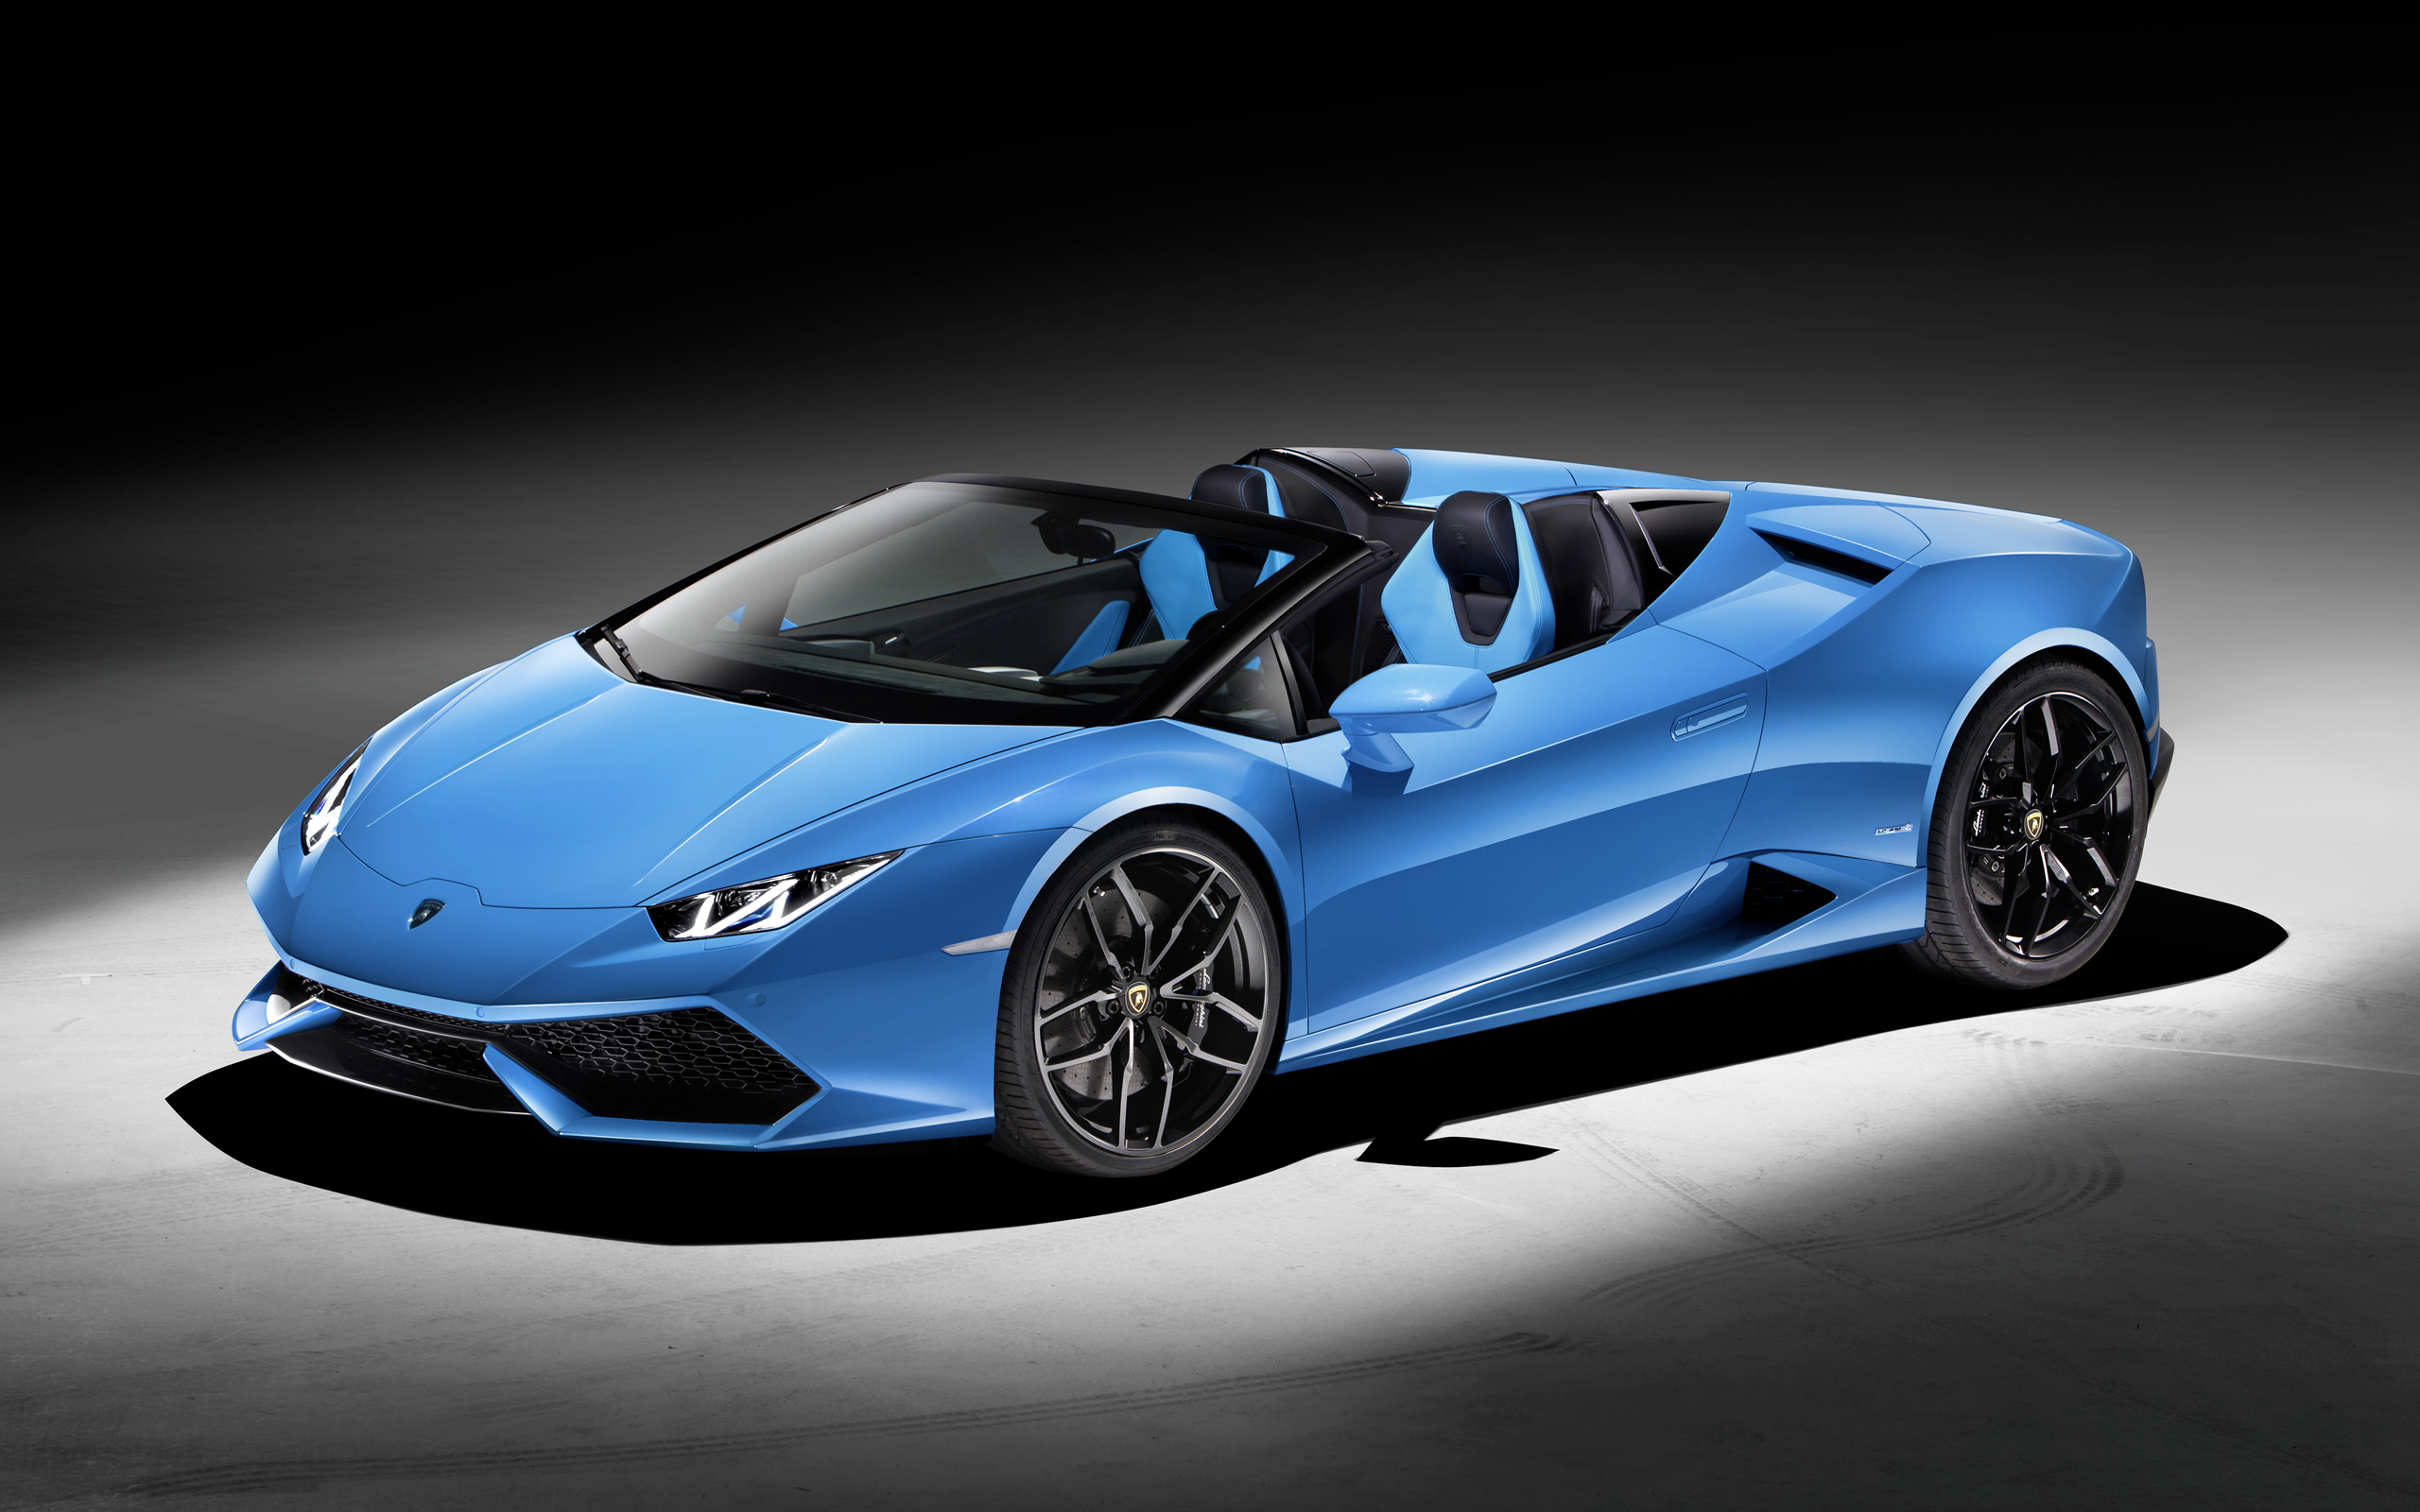 2016 lamborghini huracan lp 610 4 spyder 2 wallpaper hd